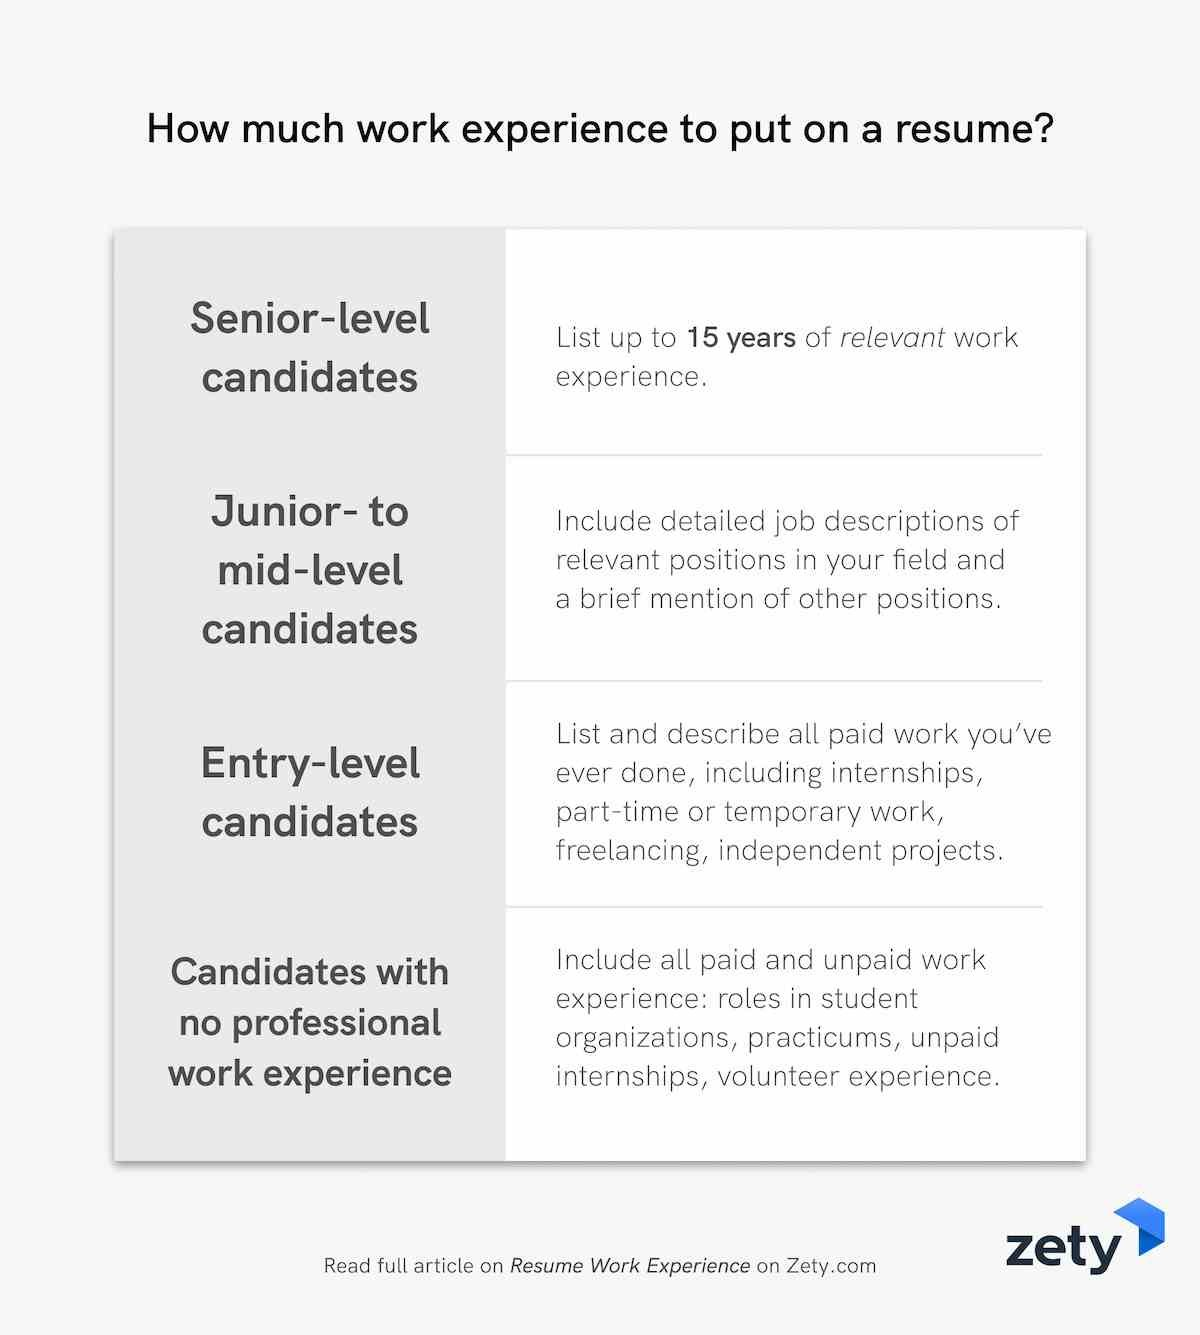 resume work experience history job description examples bullet points much to put on Resume Resume Job Bullet Points